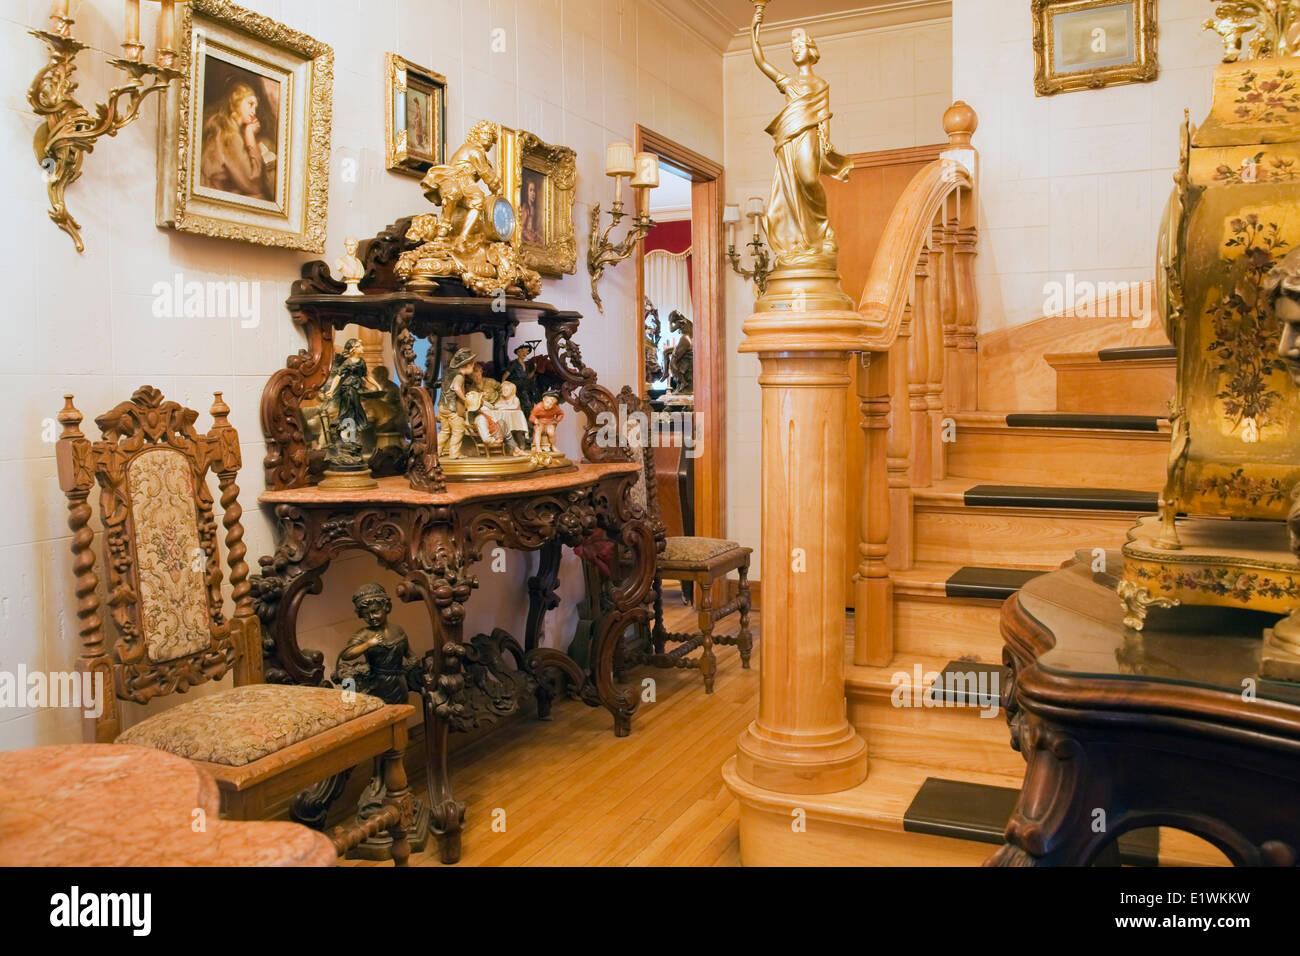 Antique Furniture Furnishings Adorn A Hallway Inside A Victorian Mansion  Quebec Canada. This Image Is Property Released. PR0103